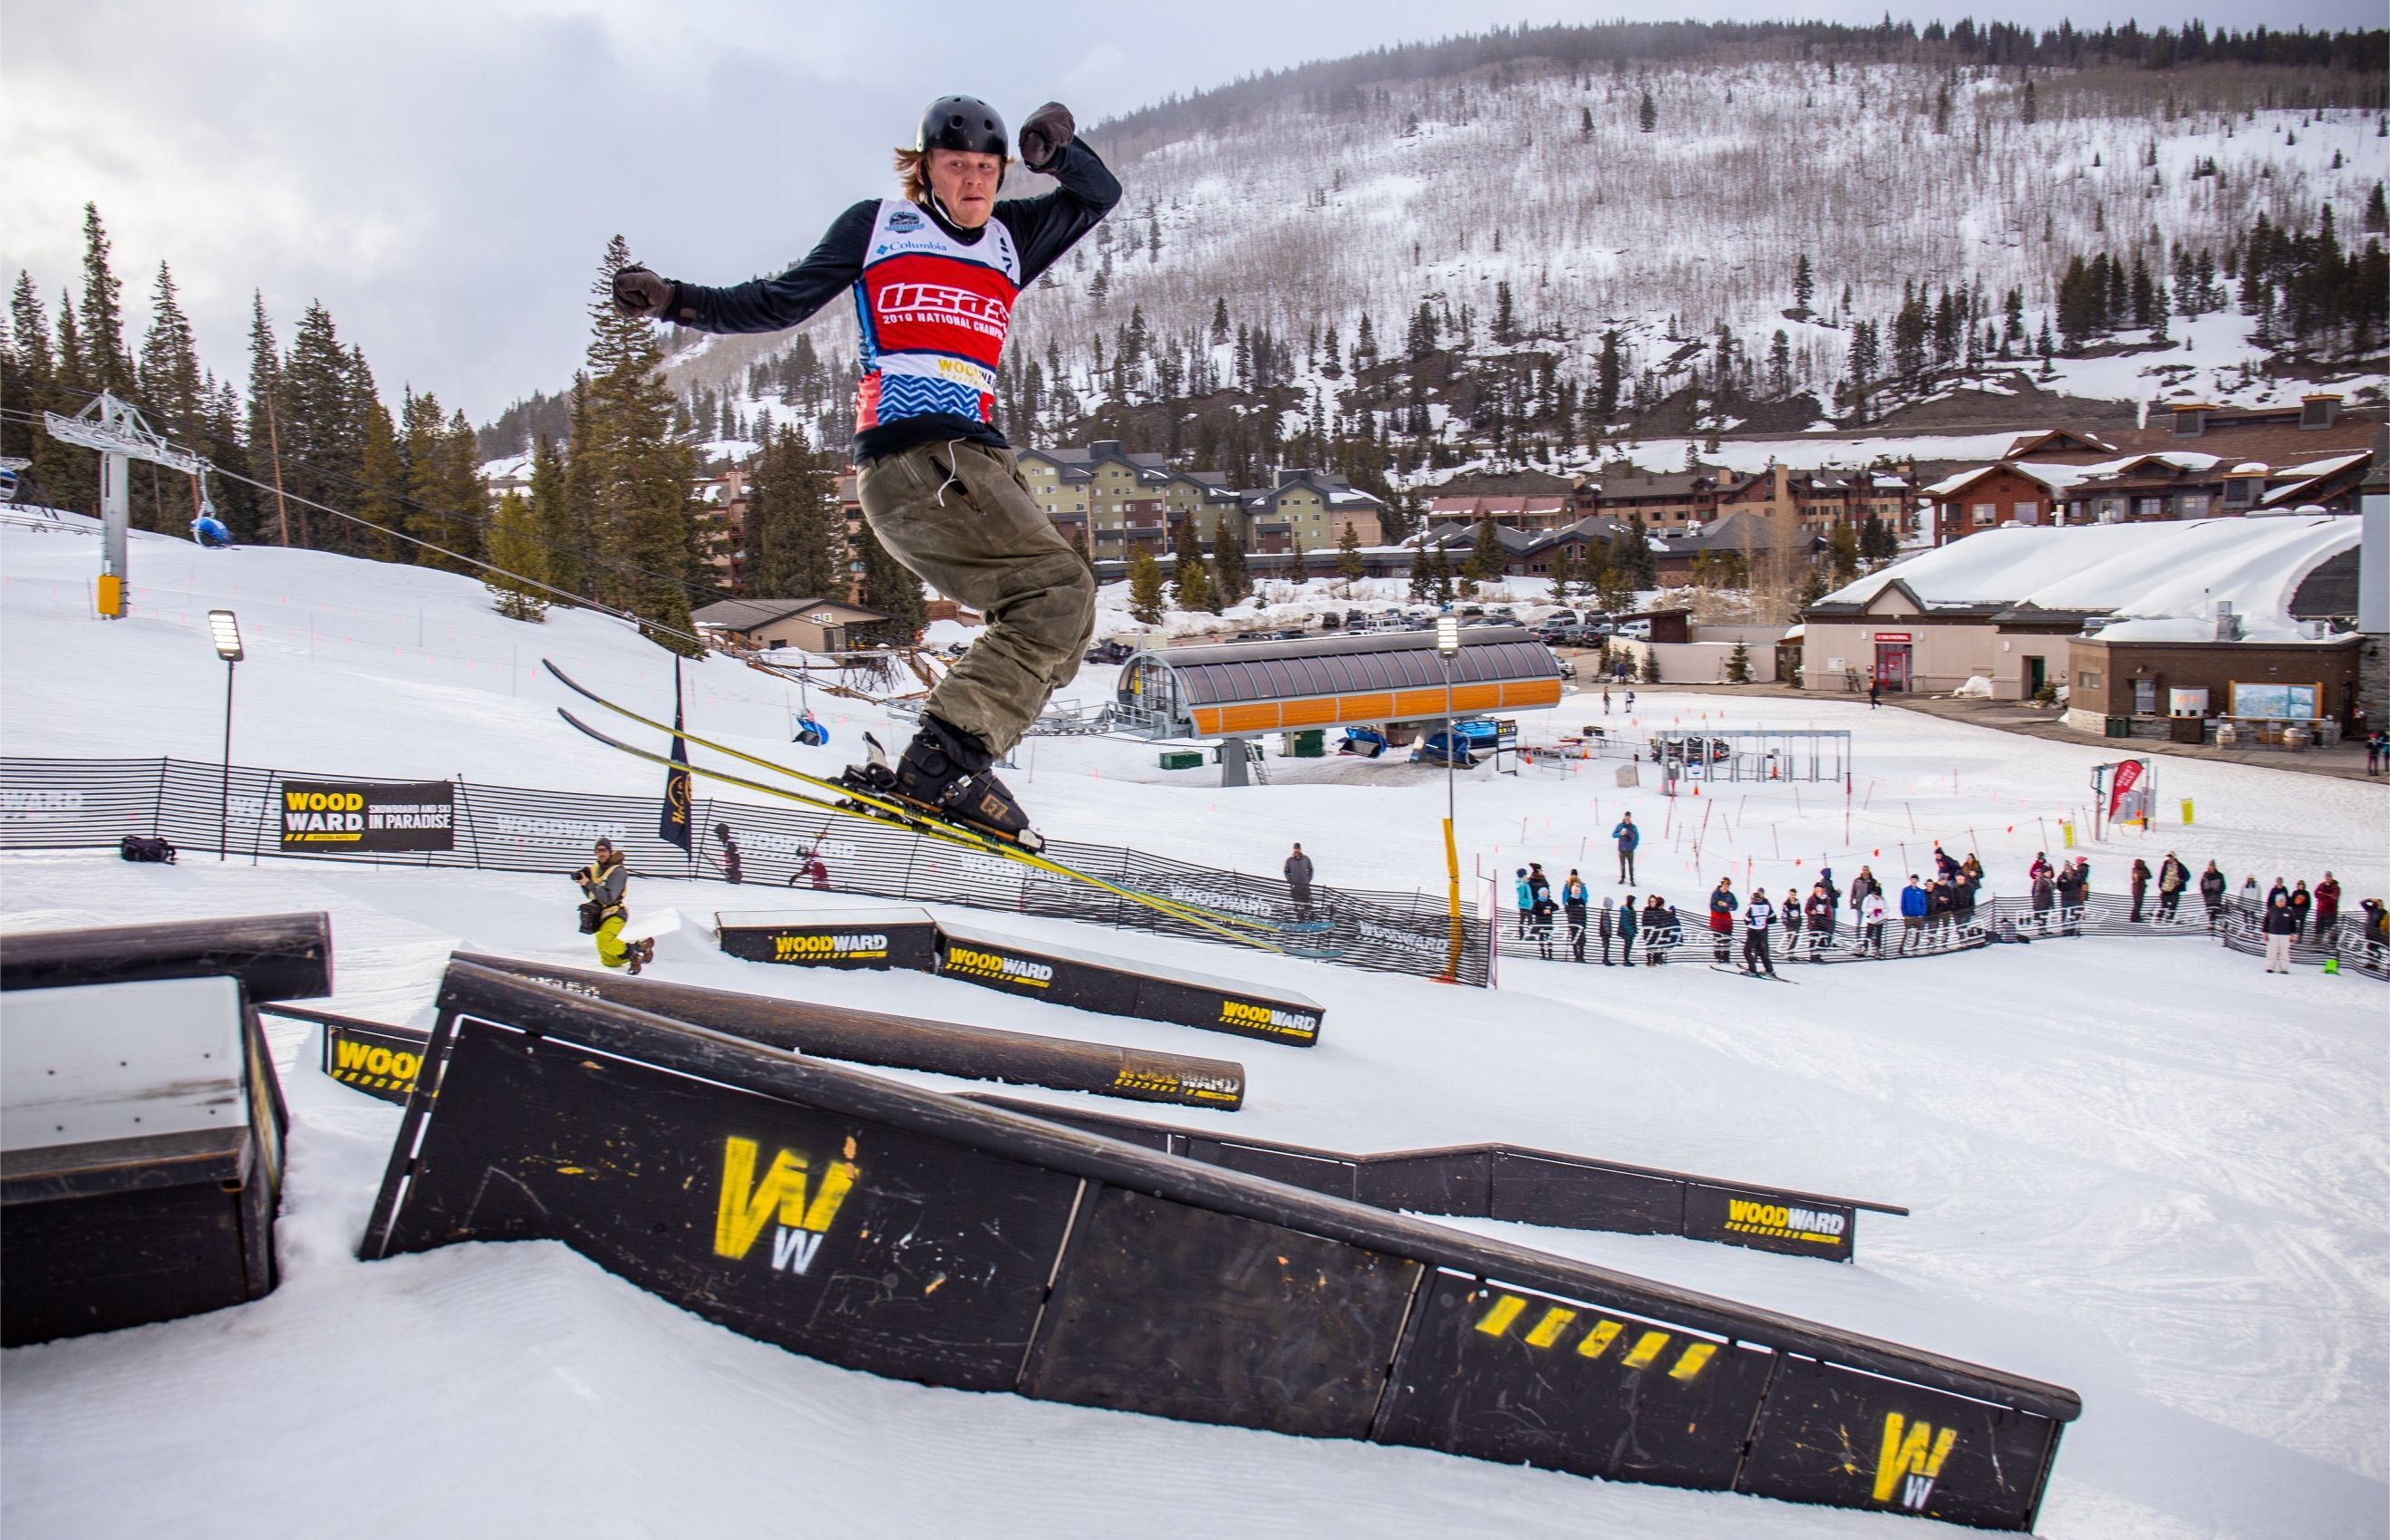 Click For 2019 Event Schedule Copper Mountain Ski Resort Events And Competitions Rail Jam Gra Copper Mountain Ski Copper Mountain Ski Resort Copper Mountain